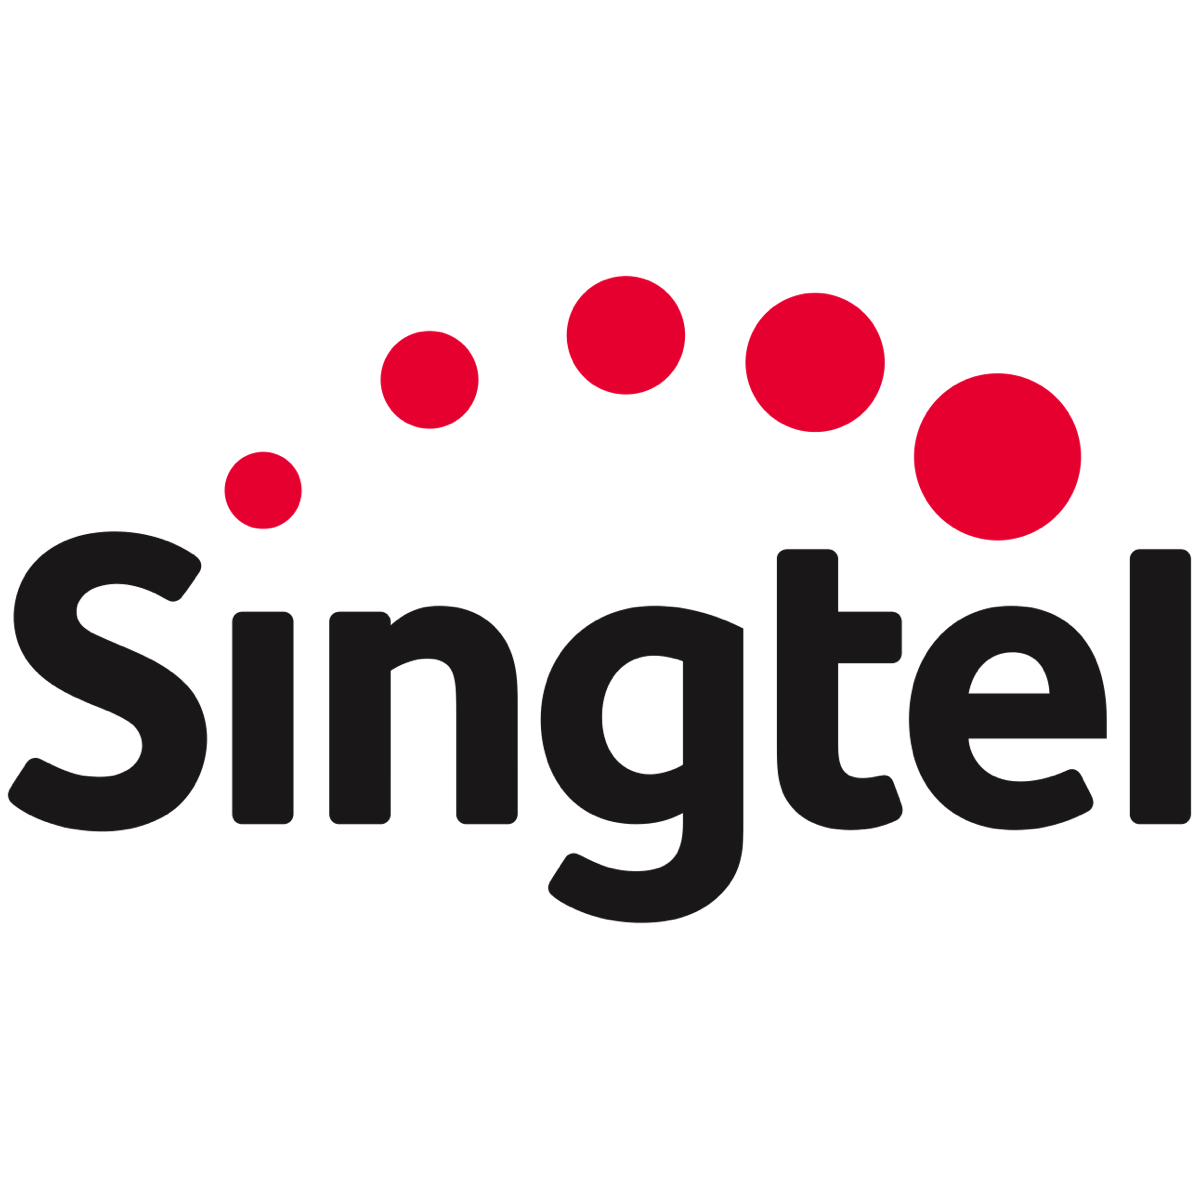 SingTel - CIMB Research 2017-11-09: 2QFY18: Largely In Line But Special DPS Disappoints